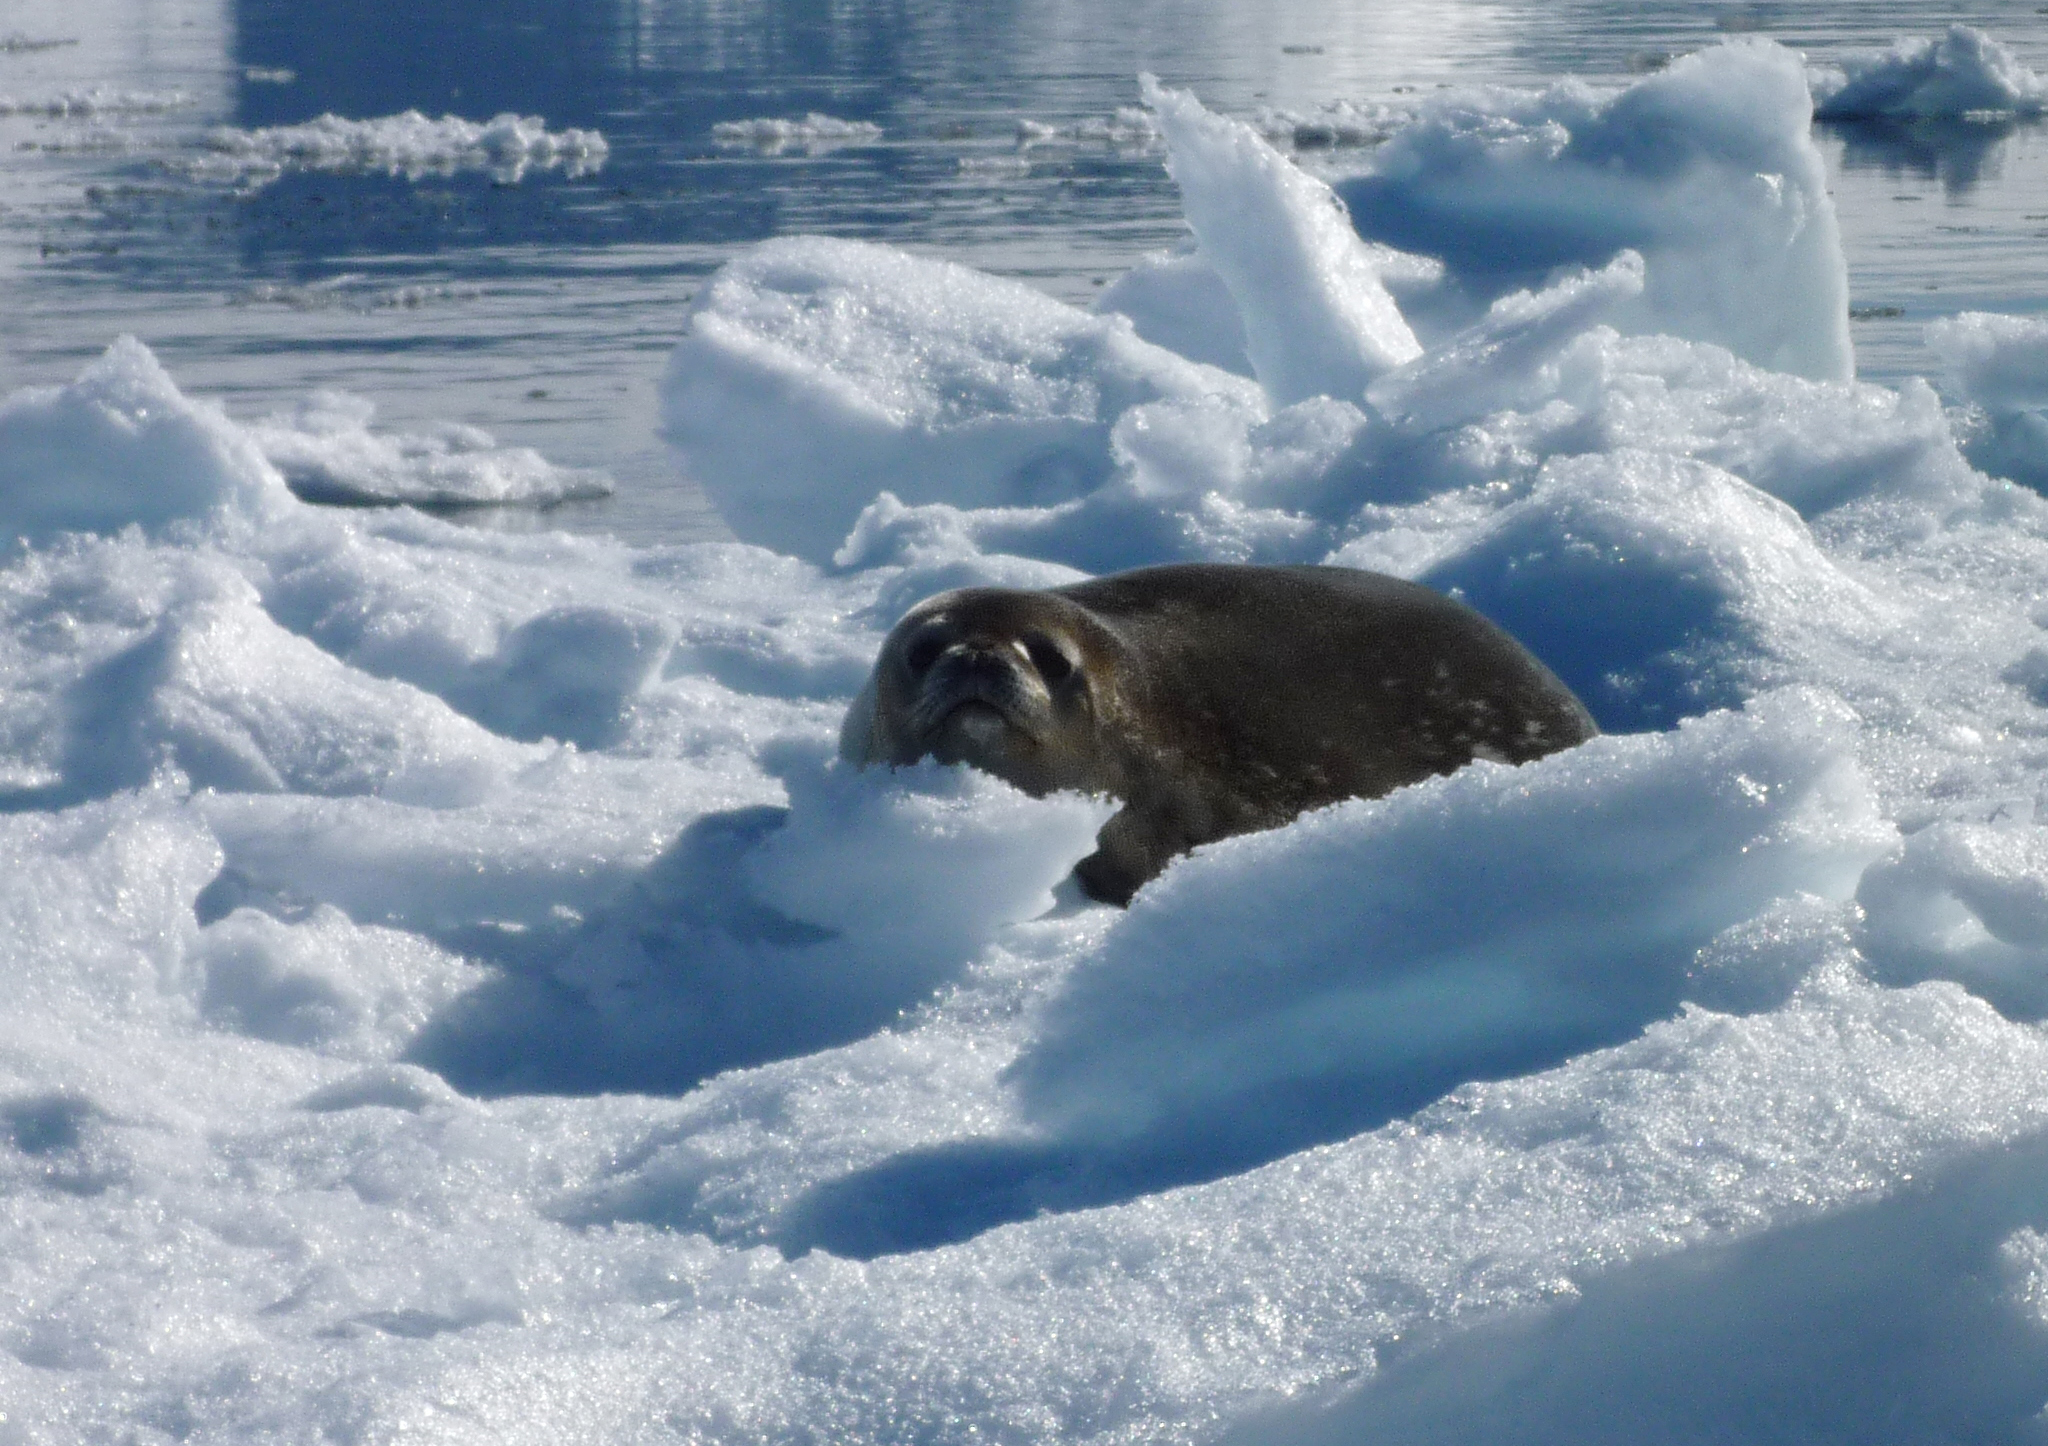 Seals are the only mammals besides whales which live in the Antarctic.